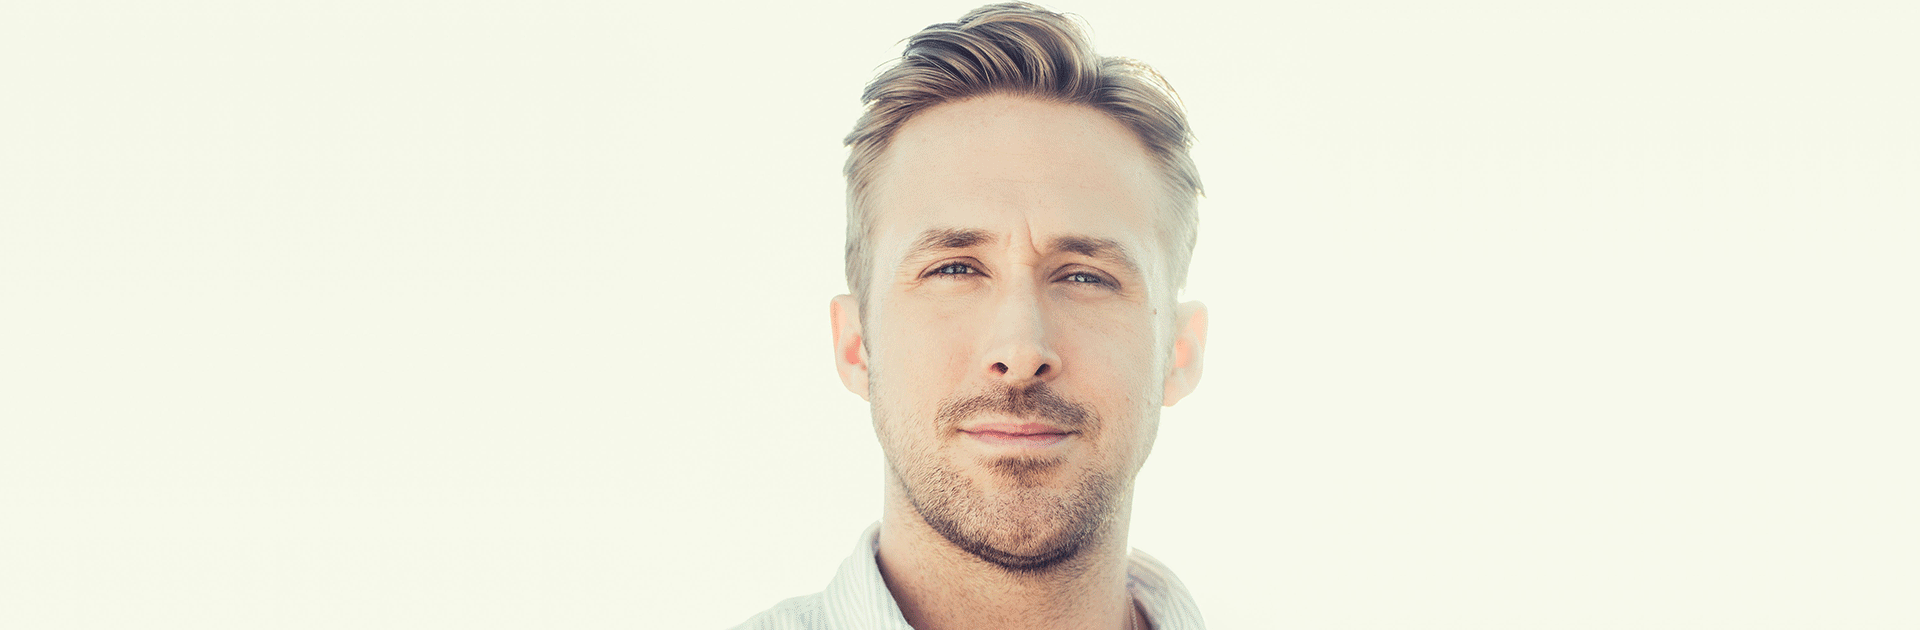 Ancestry of Ryan Gosling, his French-Canadian roots